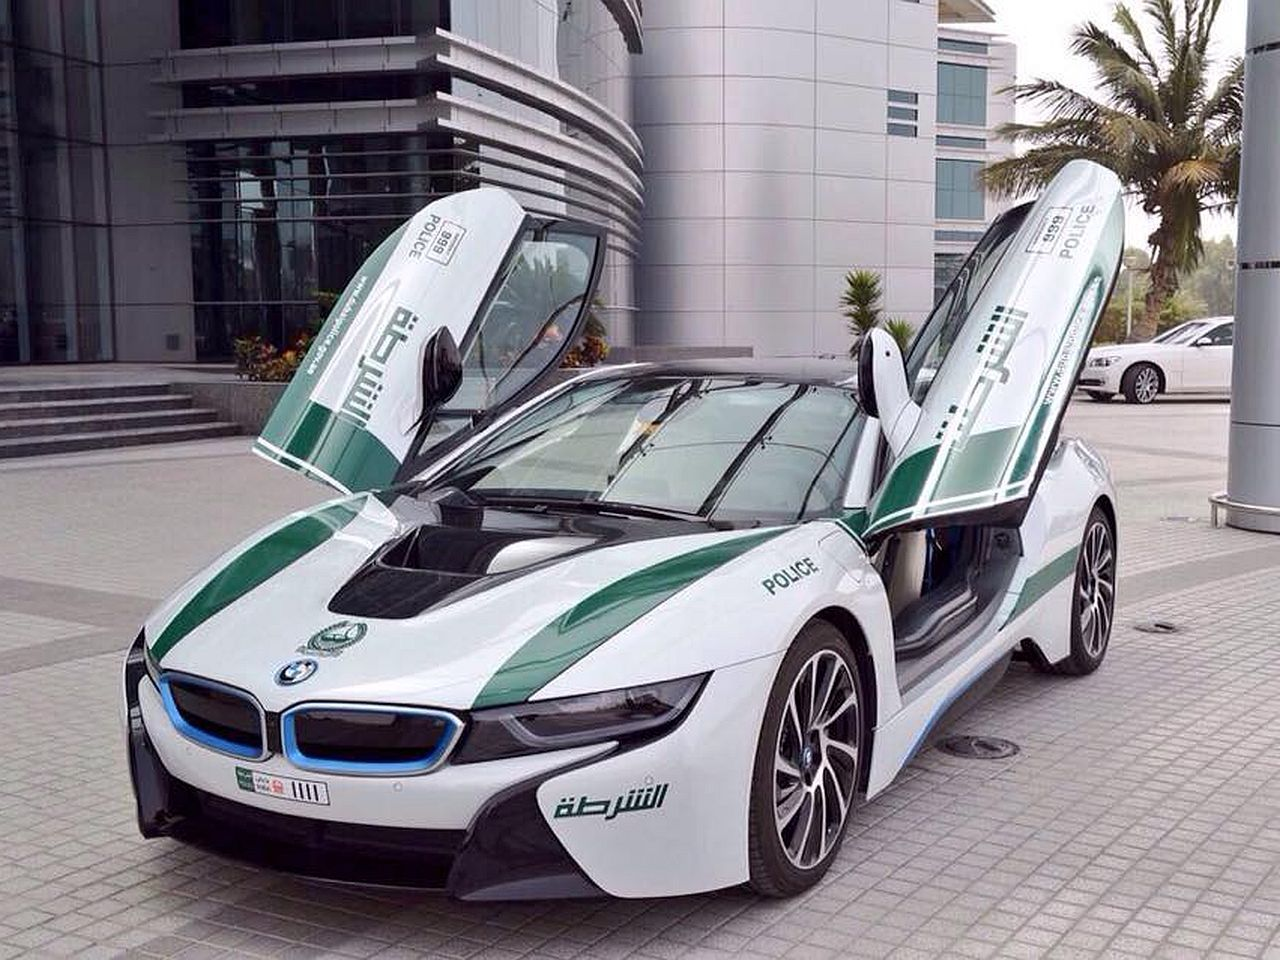 Fastest police cars in the world - BMW i8